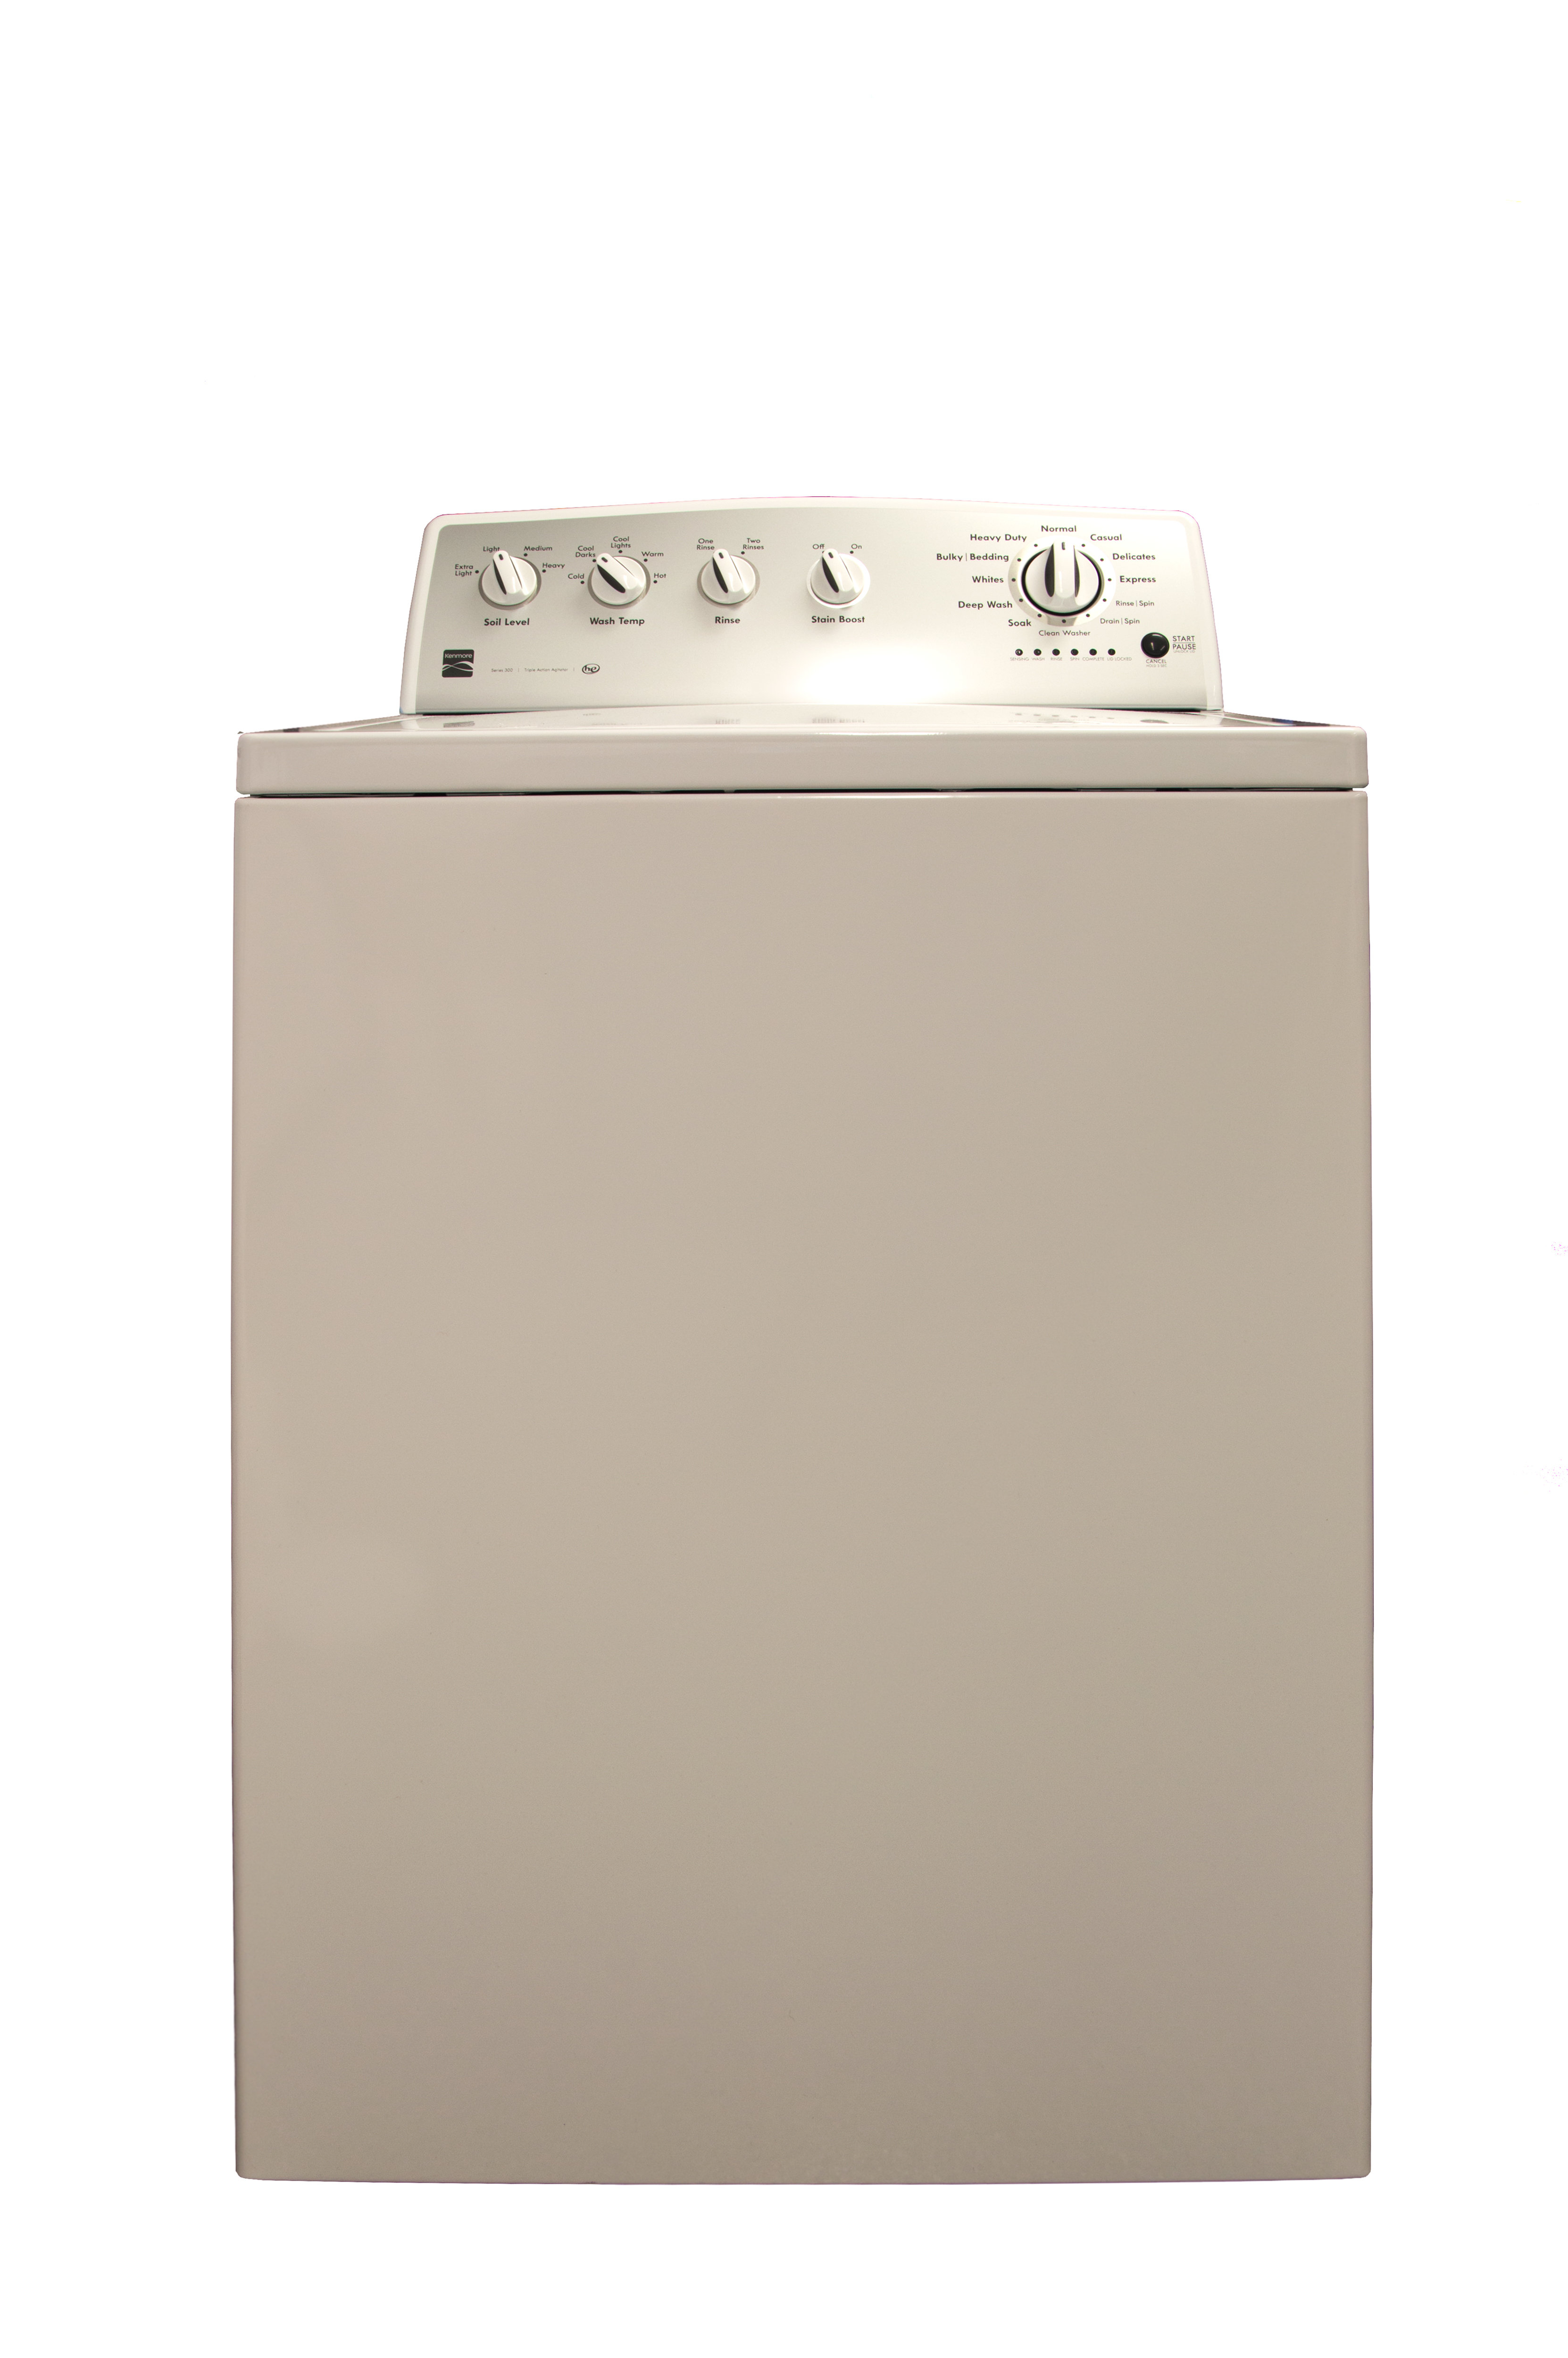 The Kenmore 22342 is a decidedly plain washer.